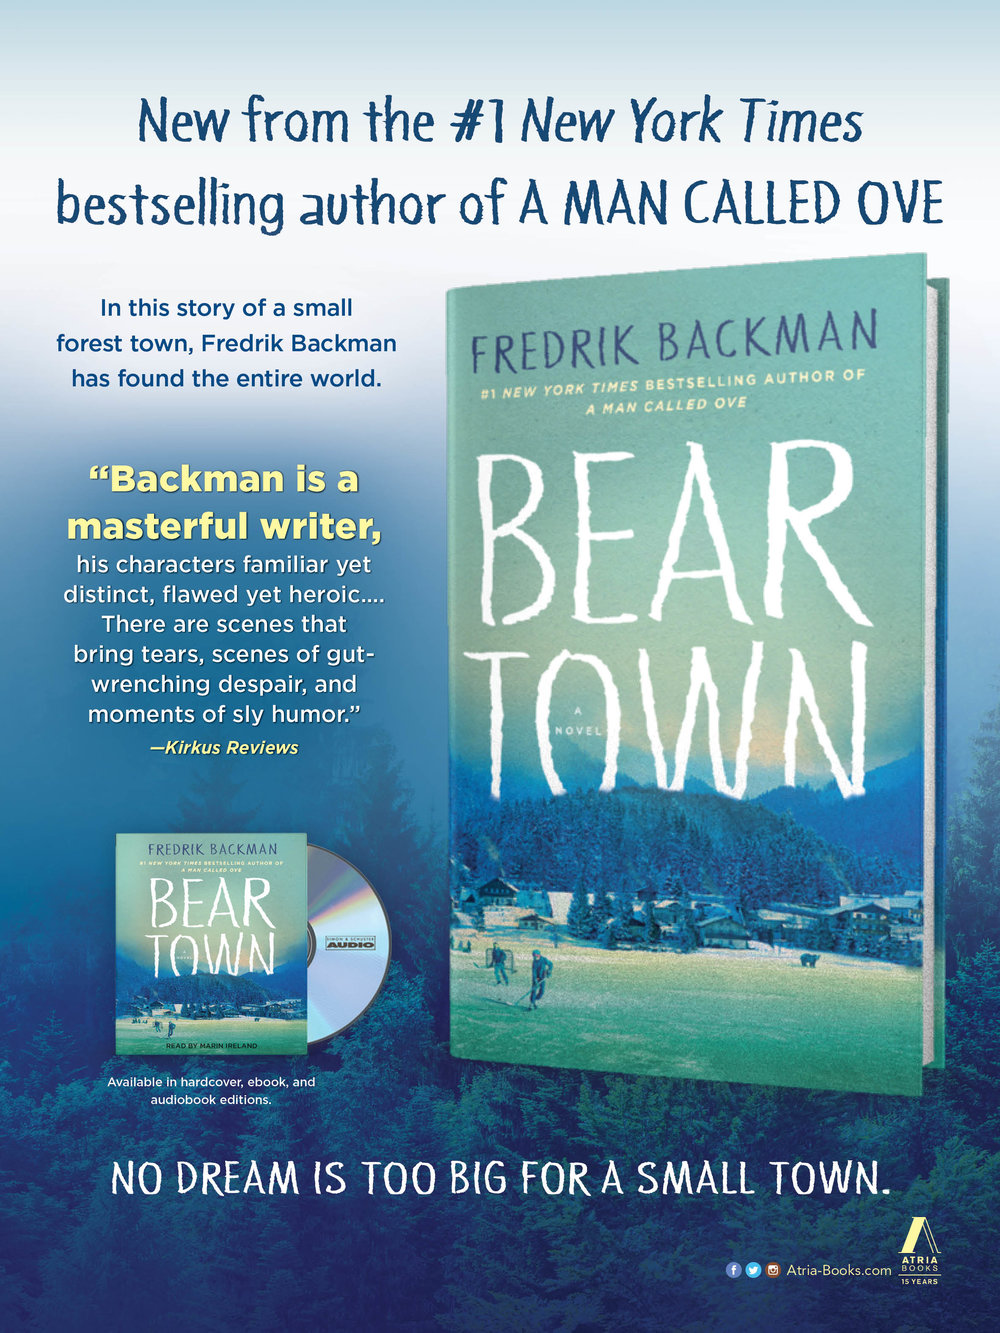 Beartown Advertisement, People Magazine, May 22, 2017 Issue